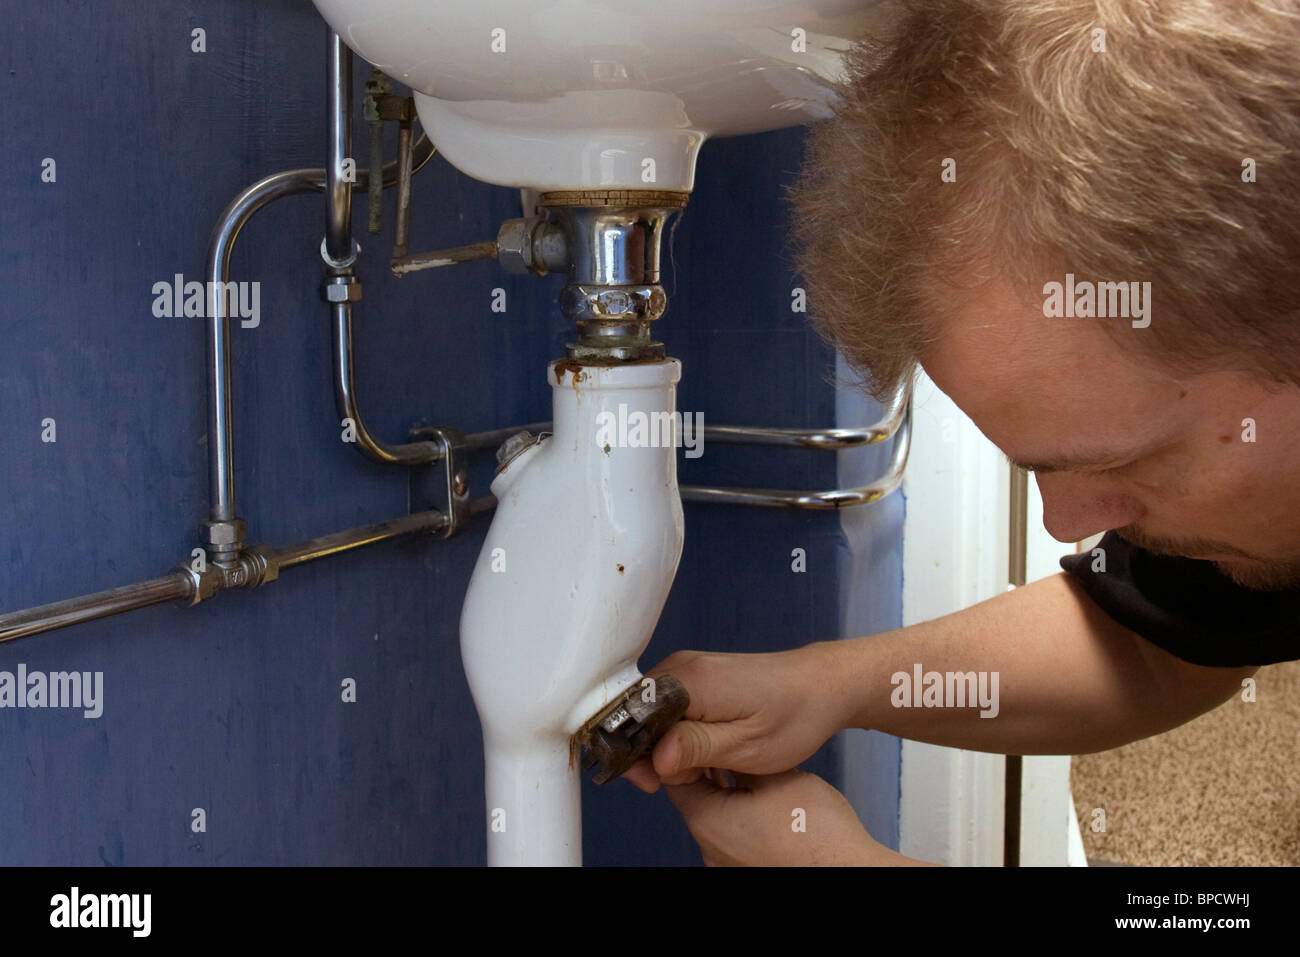 40 year old man trying to fix a stop in the washbasin pipe which is full of dirt and hair. - Stock Image